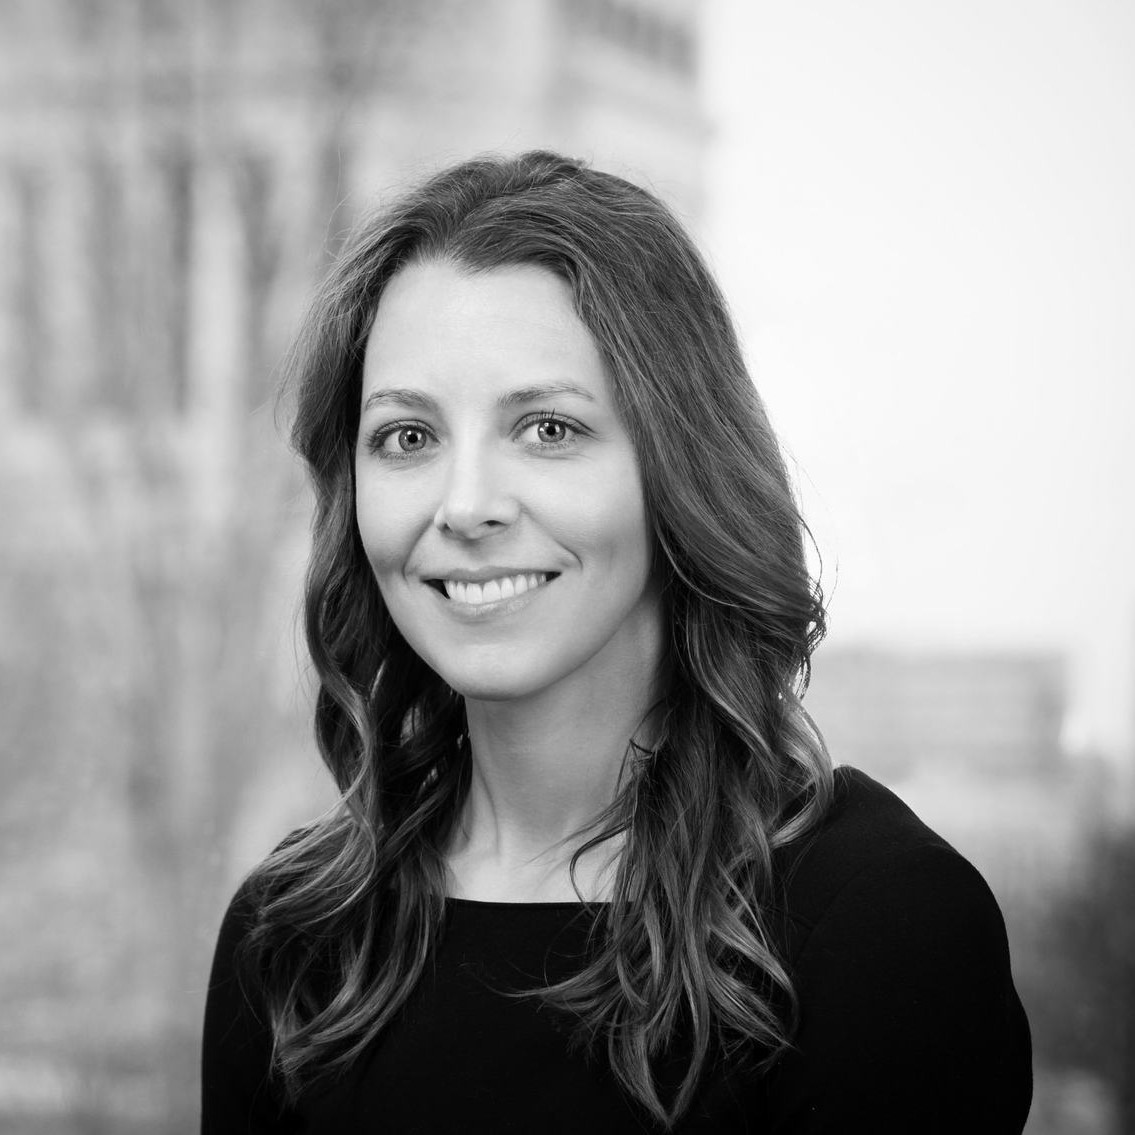 Carrie Logie - US Office - VP Client ServicesCarrie oversees multifaceted projects in highly regulated industries to exceptional levels, with excellent client feedback. Carrie brings a collaborative and creative approach to developing client relationships and managing strategic partnerships.